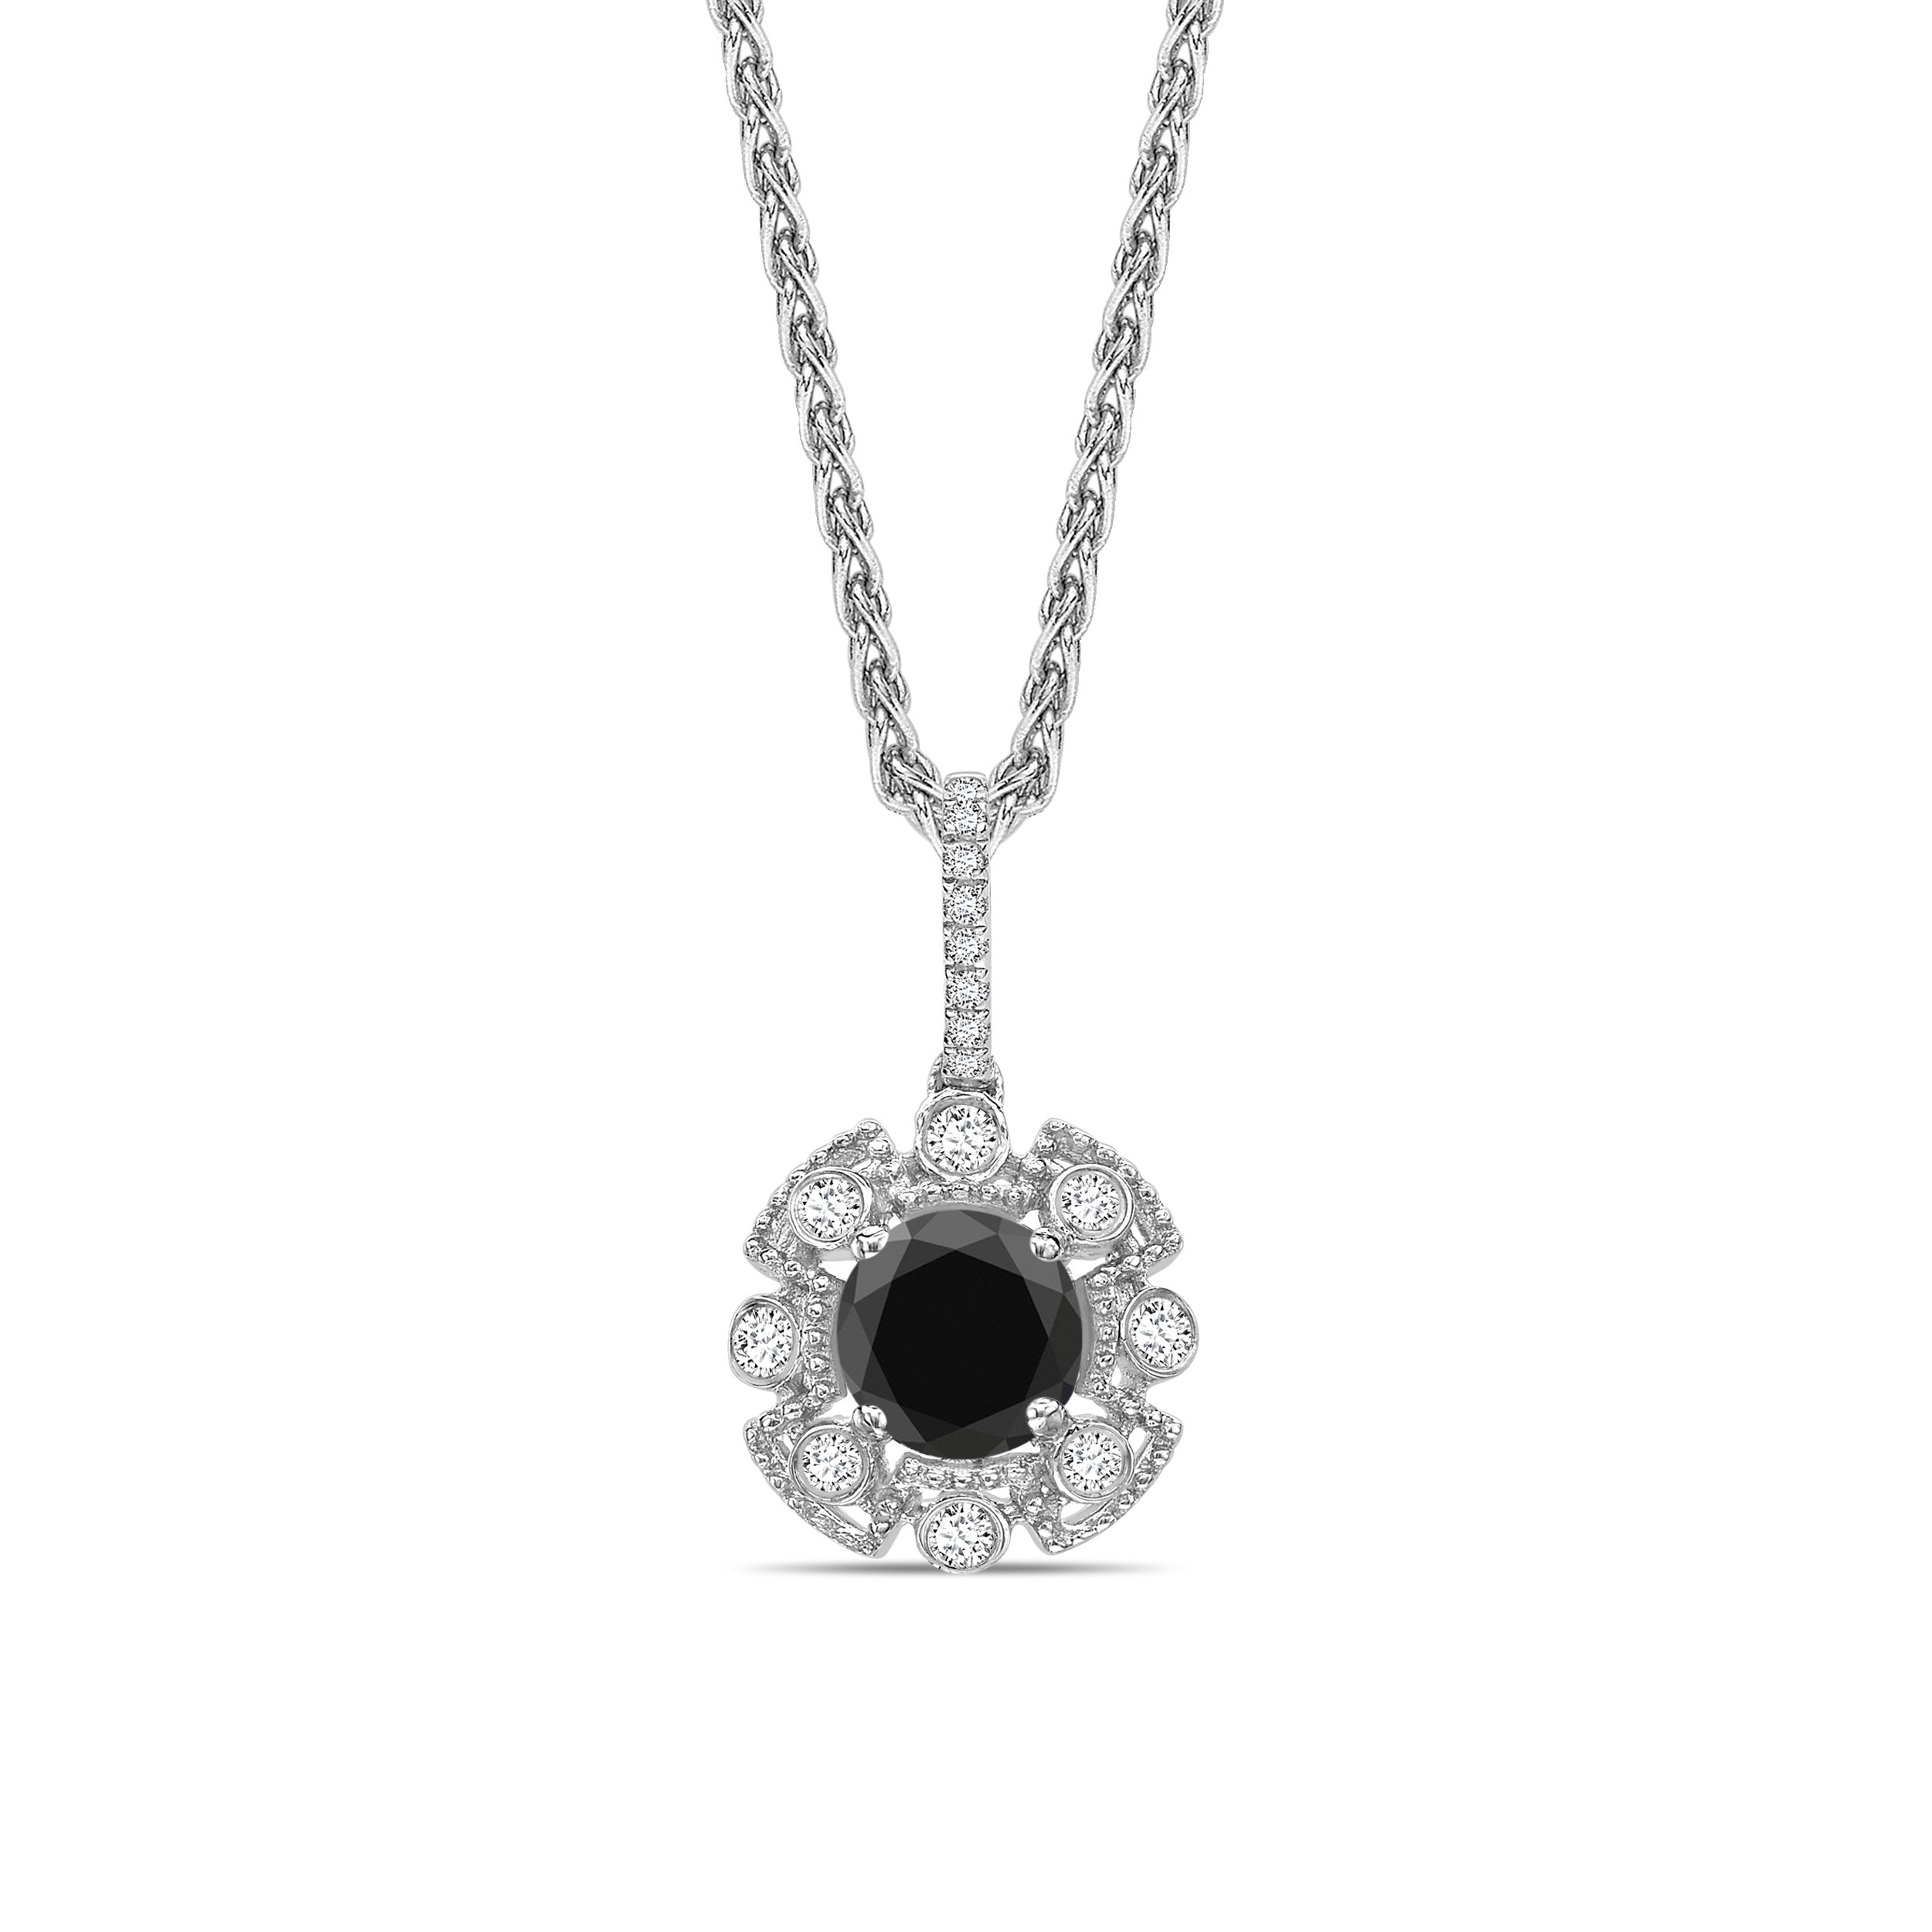 Halo Design Vintage Style Black Diamond Solitaire Pendants Necklace